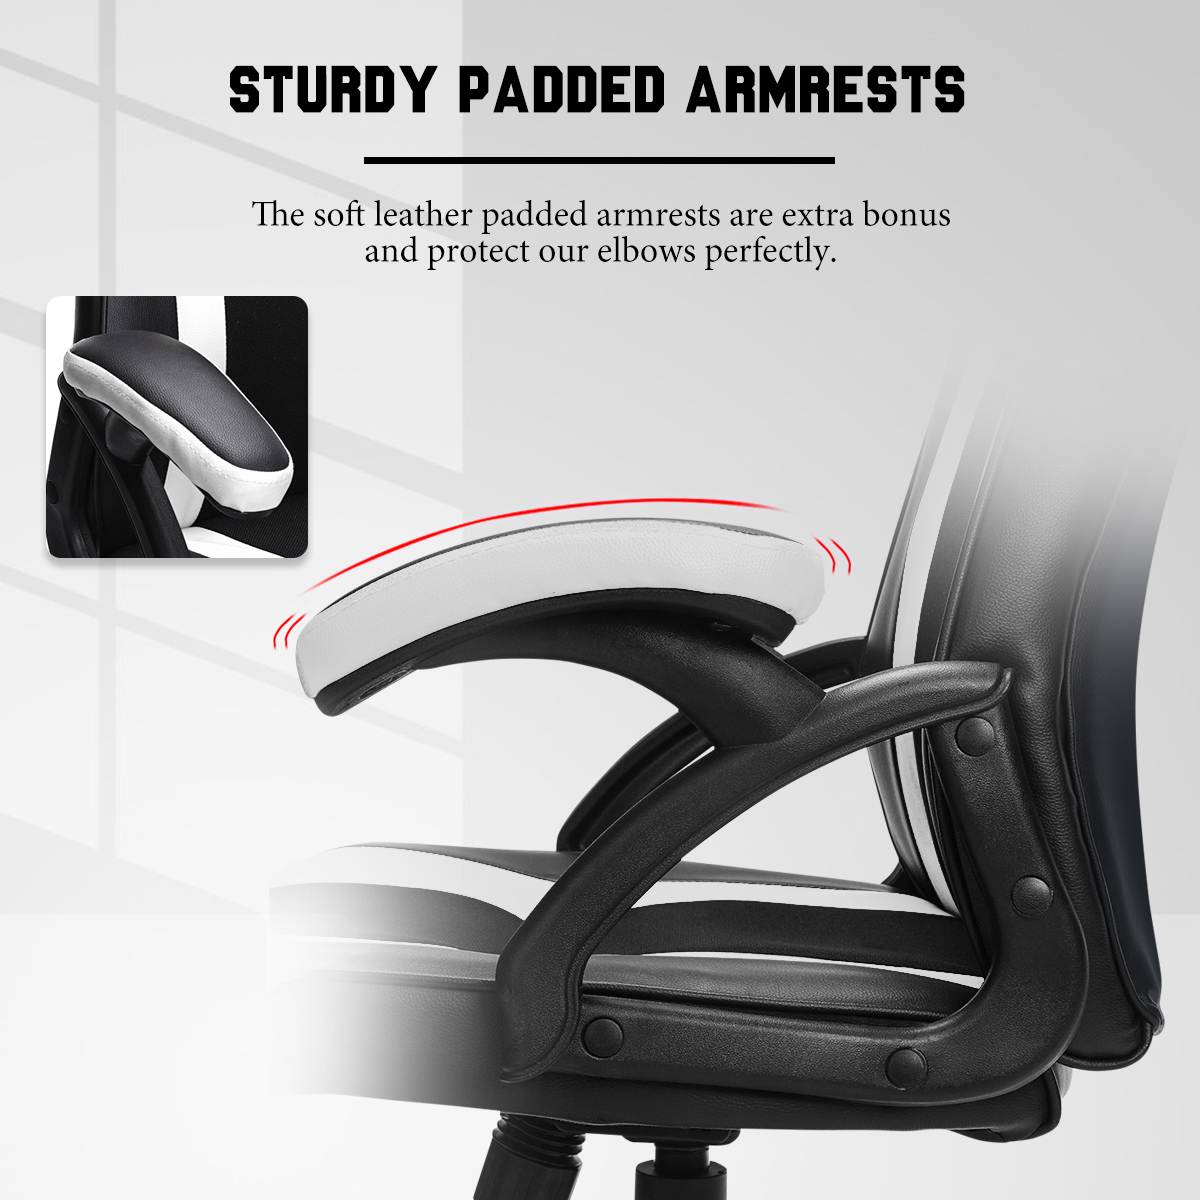 H5bb4cba25cac4de4804cf0acc31d7654P - Gaming Office Chairs Executive Computer Chair Desk Chair Comfortable Seating Adjustable Swivel Racing Armchair Office Furniture